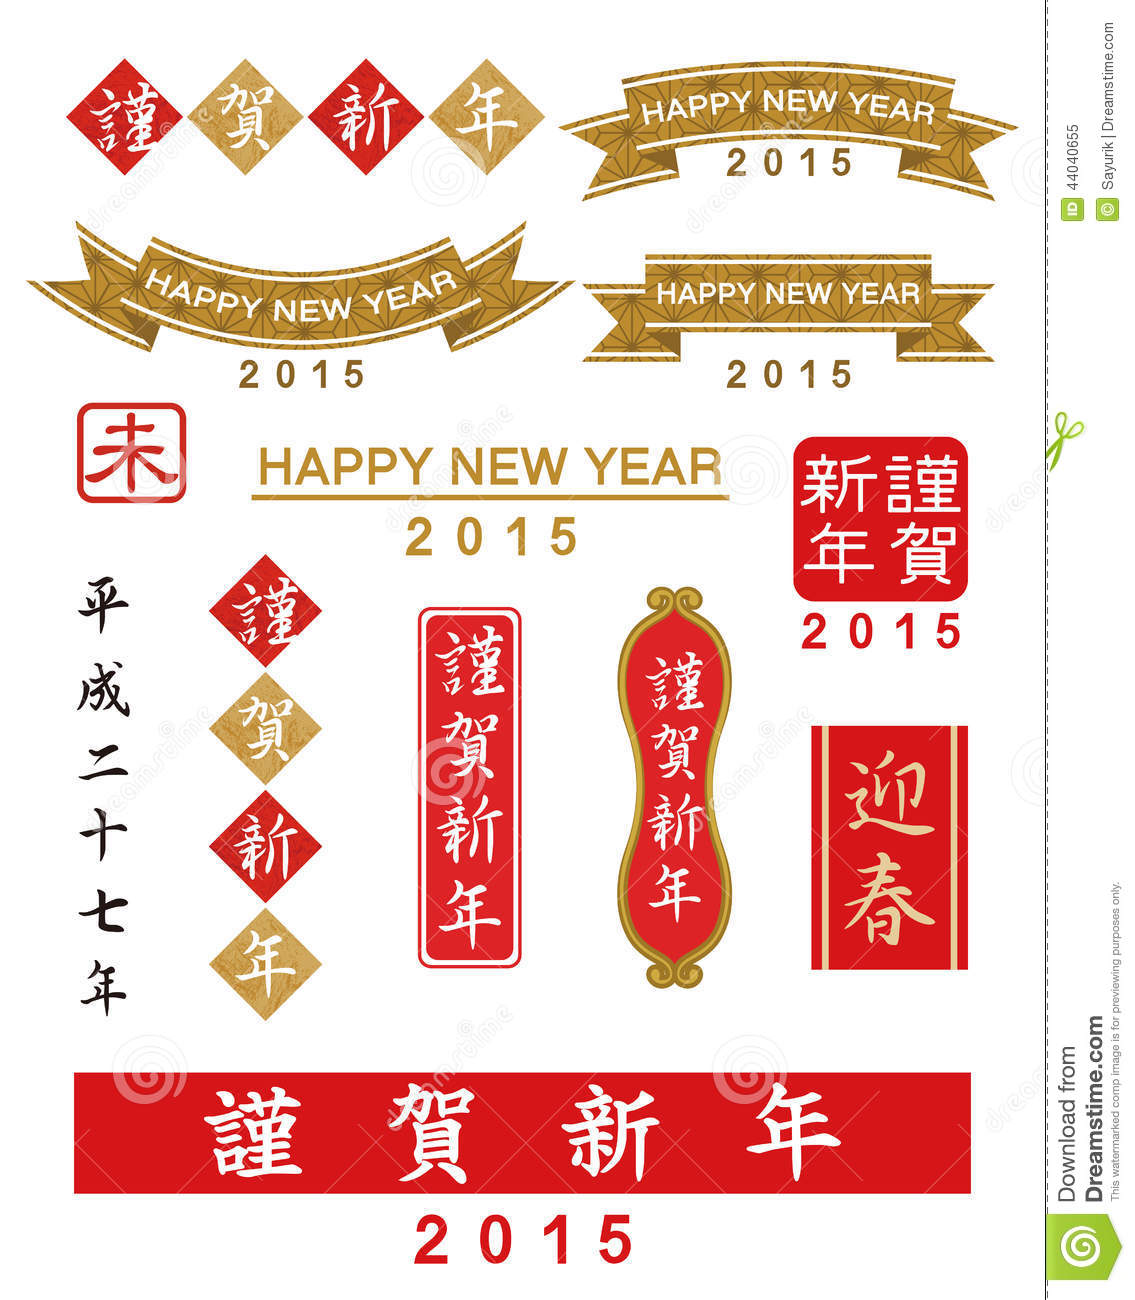 Japanese New Year's Words Set Stock Vector - Image: 44040655